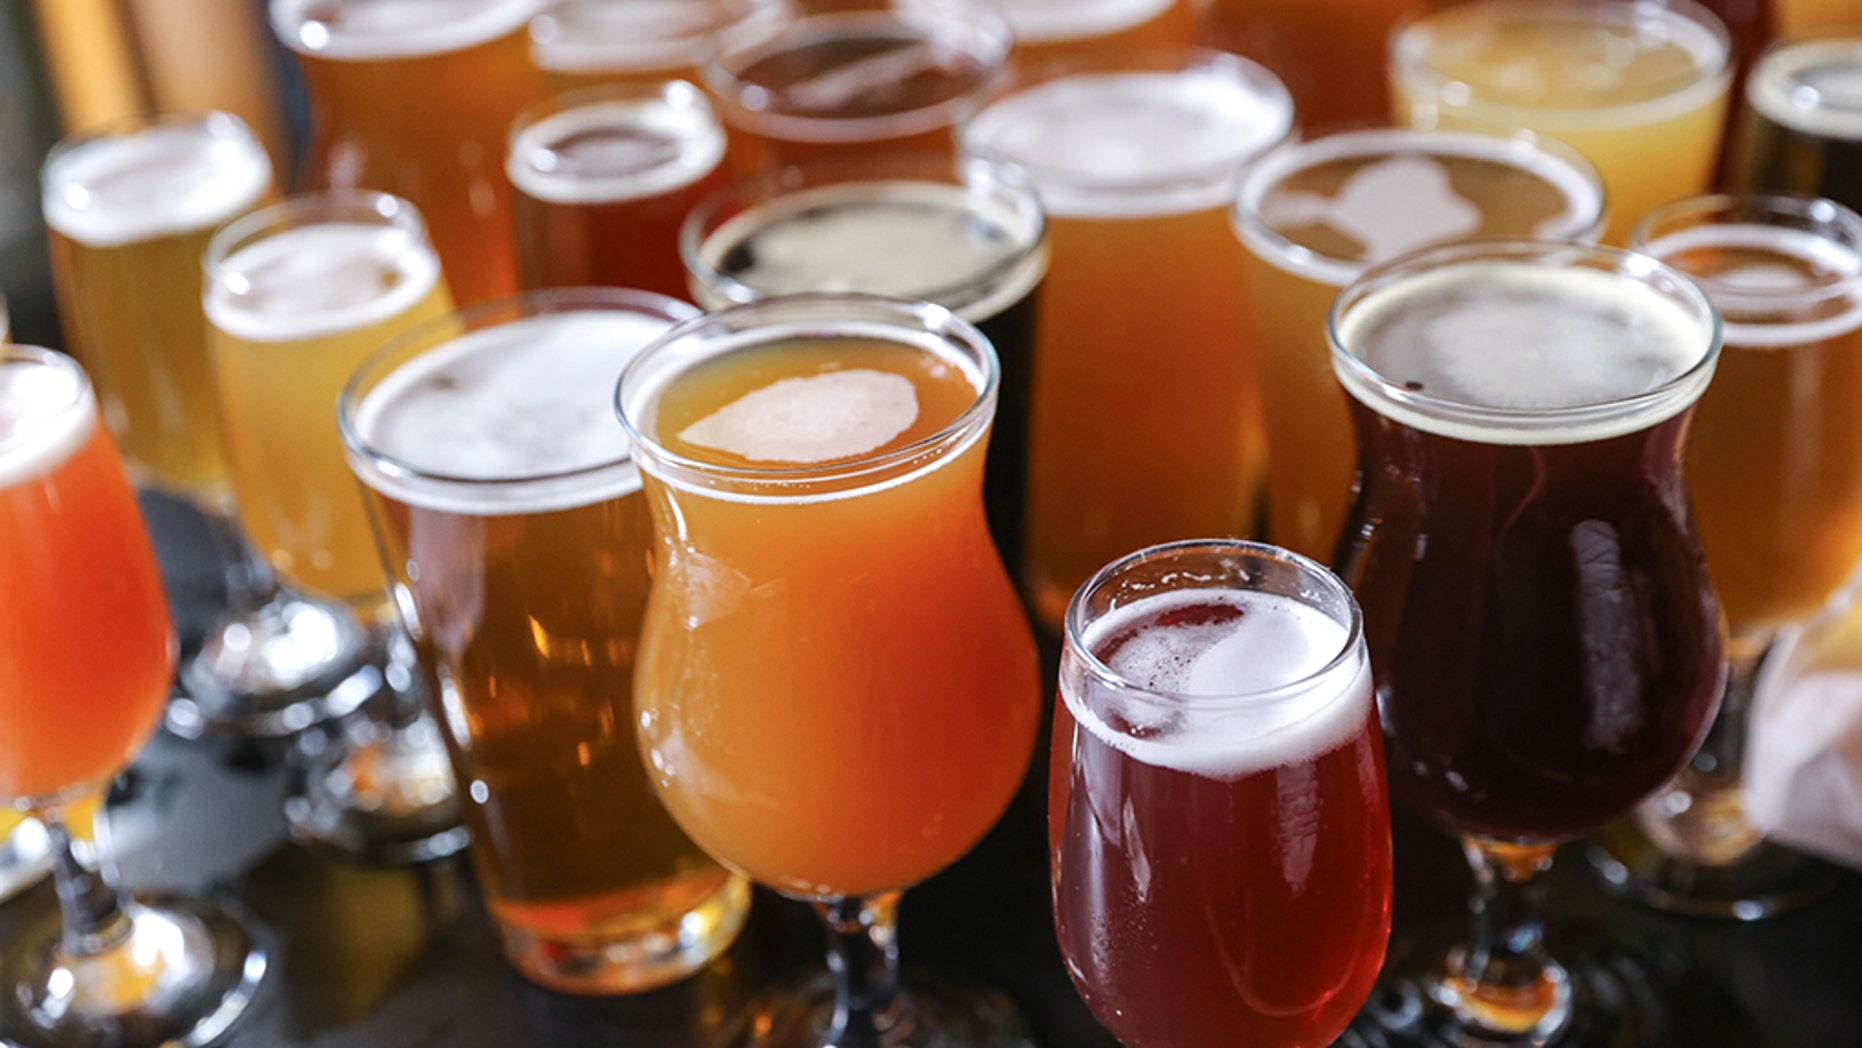 "The owners of a northern Indiana brewery have apologized after receiving criticism for their plan to give their beers contentious names such as ""Flint Michigan Tap Water,"" ''Black Beer Matters,"" ''White Guilt"" and ""Mass Grave."" (Istock)"